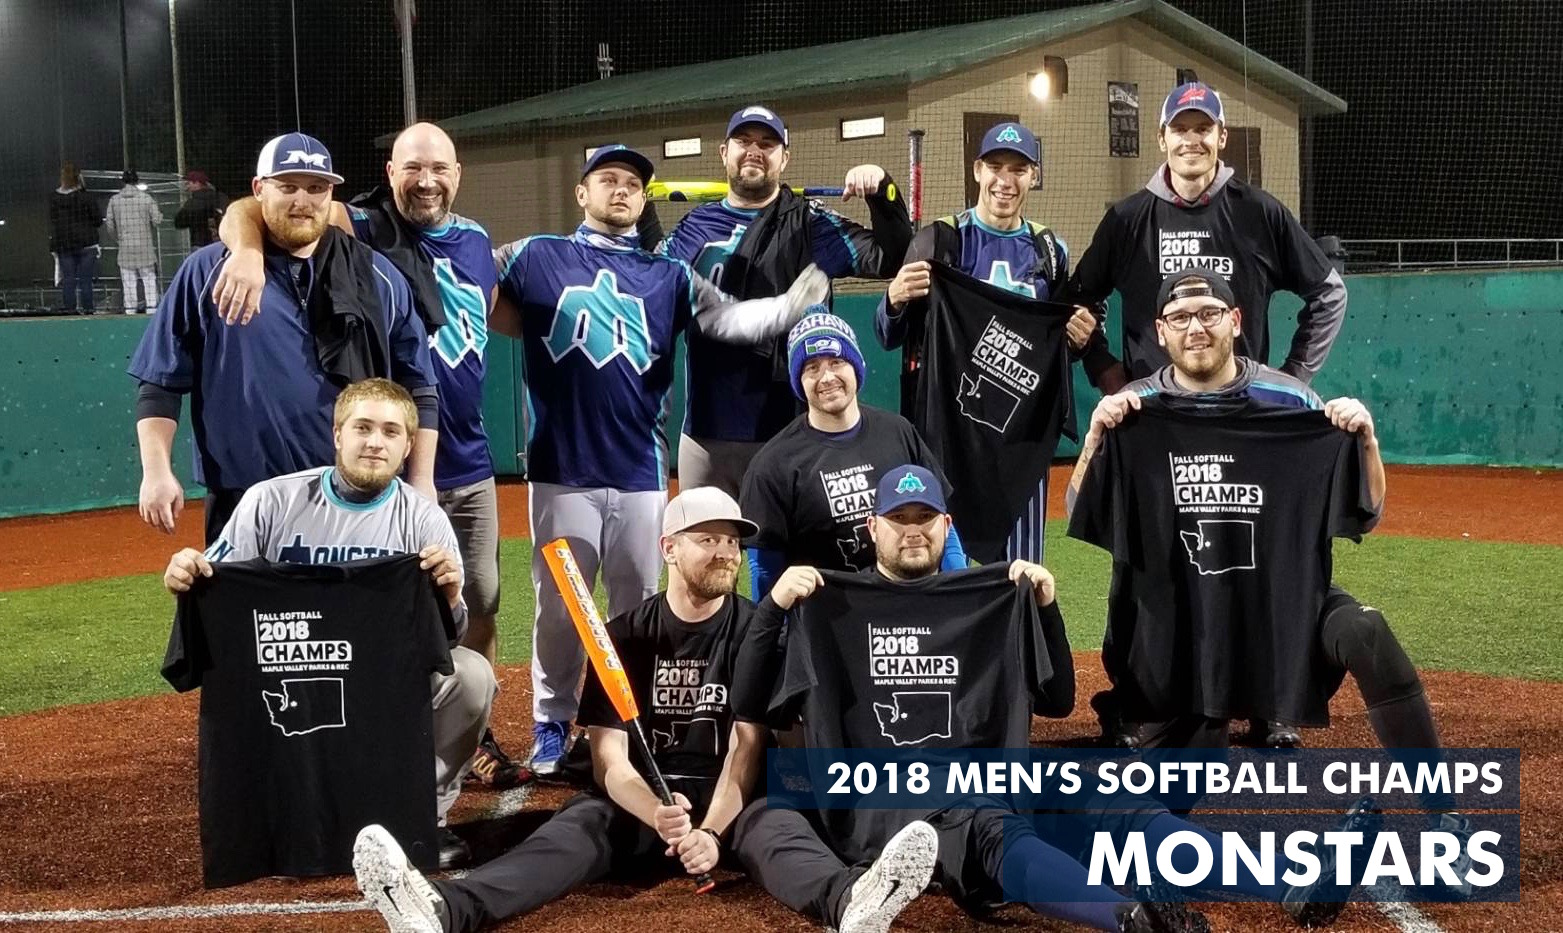 2018 Men's Softball Champs